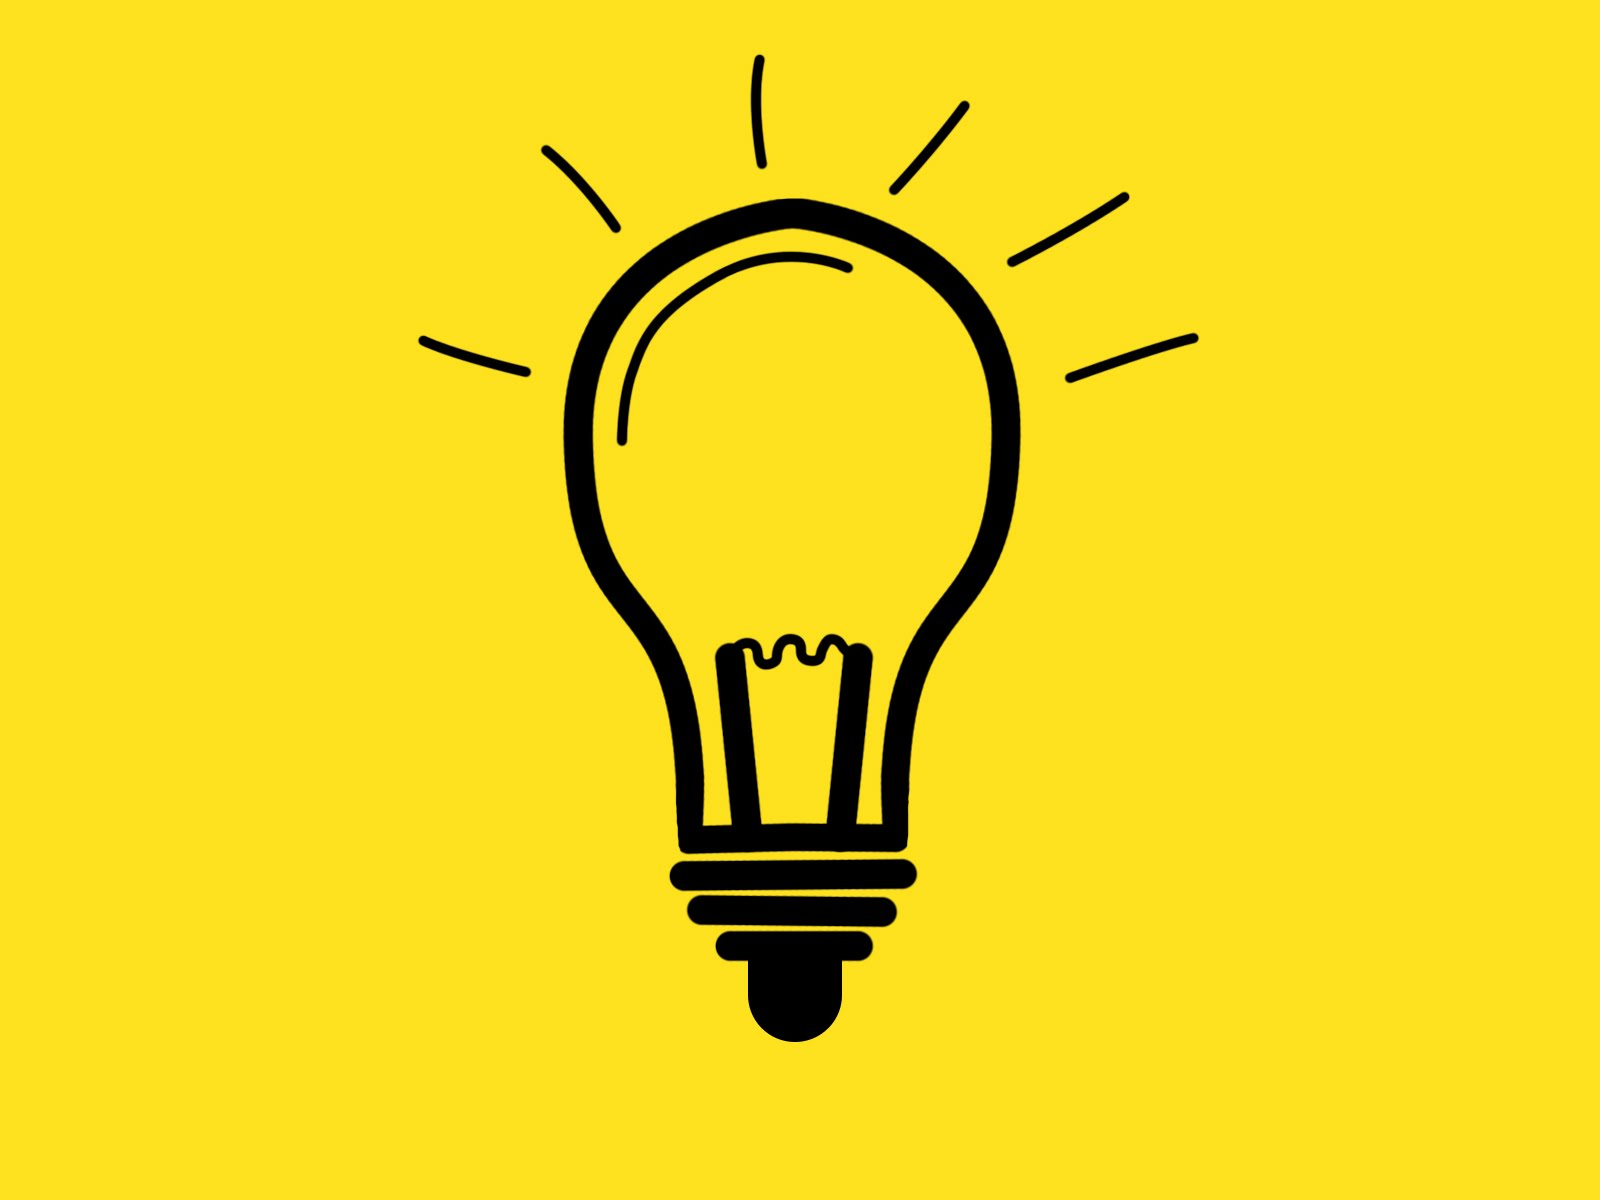 1600x1200 Clip Art Tutorial How To Make Bulb Clipart In Photoshop